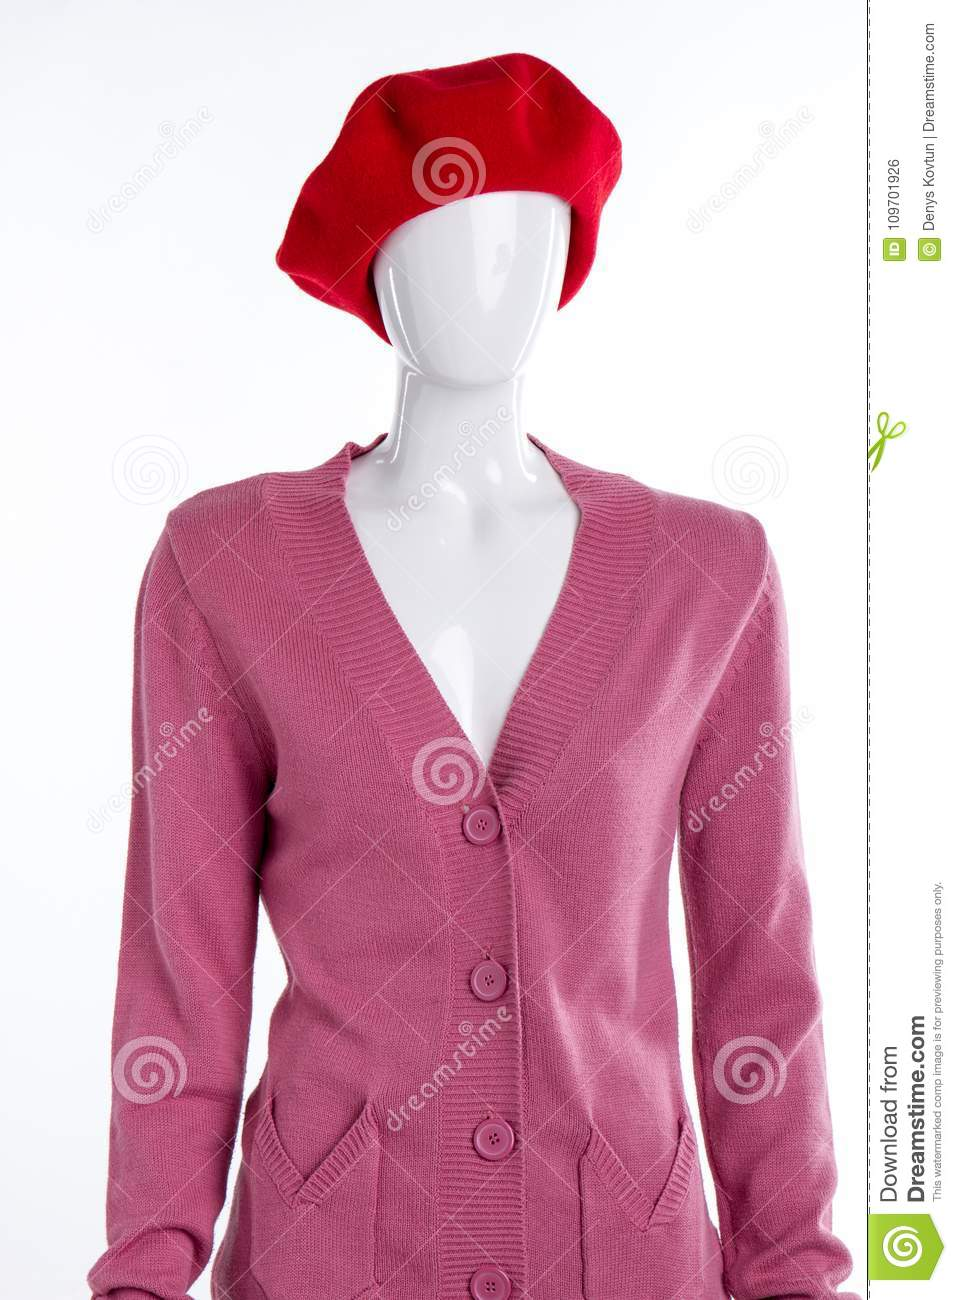 c85a114374740 Red French Beret And Cardigan. Stock Photo - Image of dummy, autumn ...